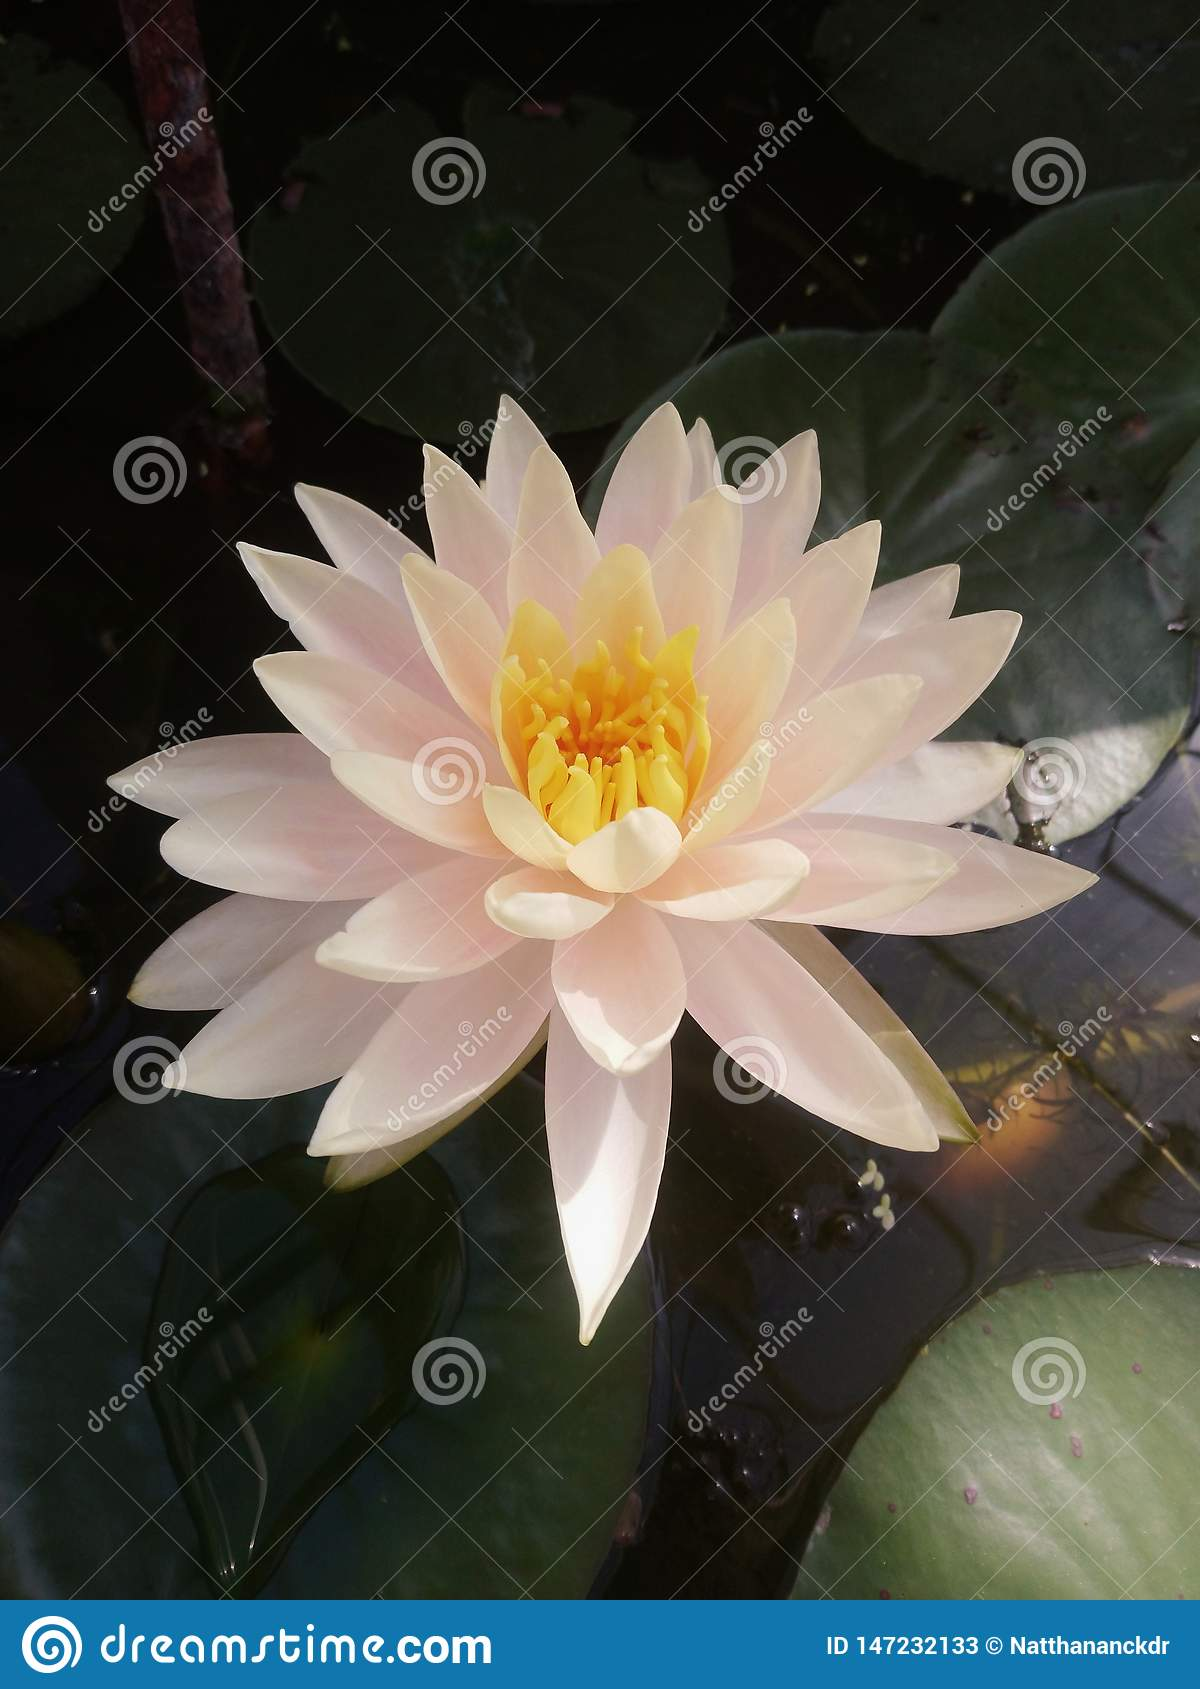 The white lotus flower close-up